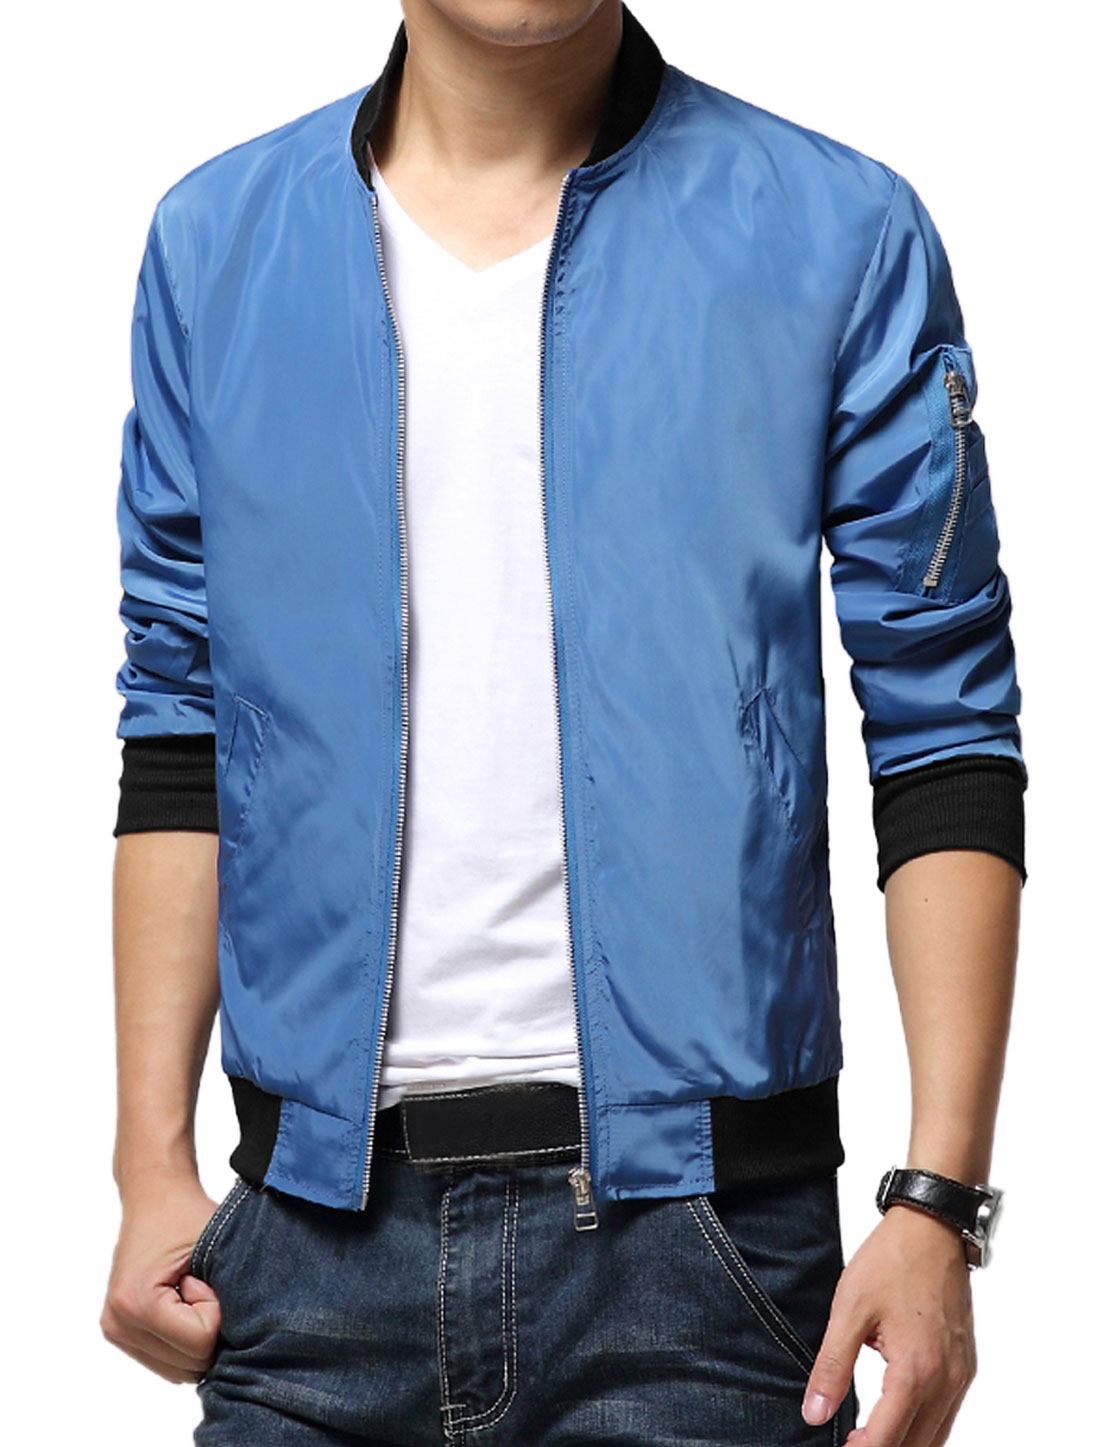 Men Blue Zip Closure Front Pockets Ribbed Cuffs Leisure Jacket S